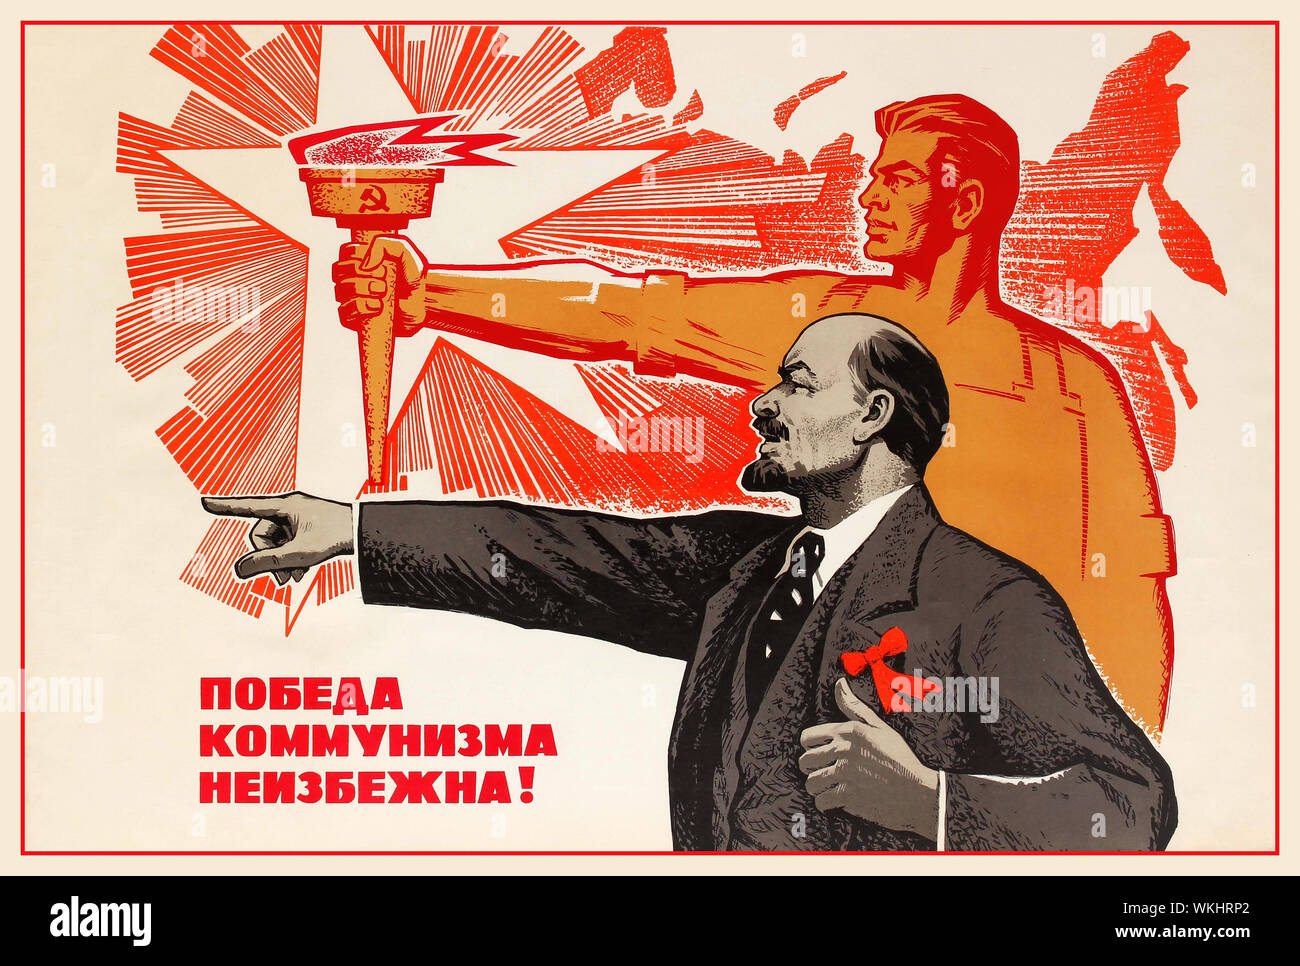 "Vintage 1960's Soviet propaganda poster  ""The Victory of Communism is Inevitable"" featuring illustration of Lenin pointing and a Soviet worker holding a flaming torch of communism behind him. Soviet Russia, 1969, designer: V. Konuhov Stock Photo"